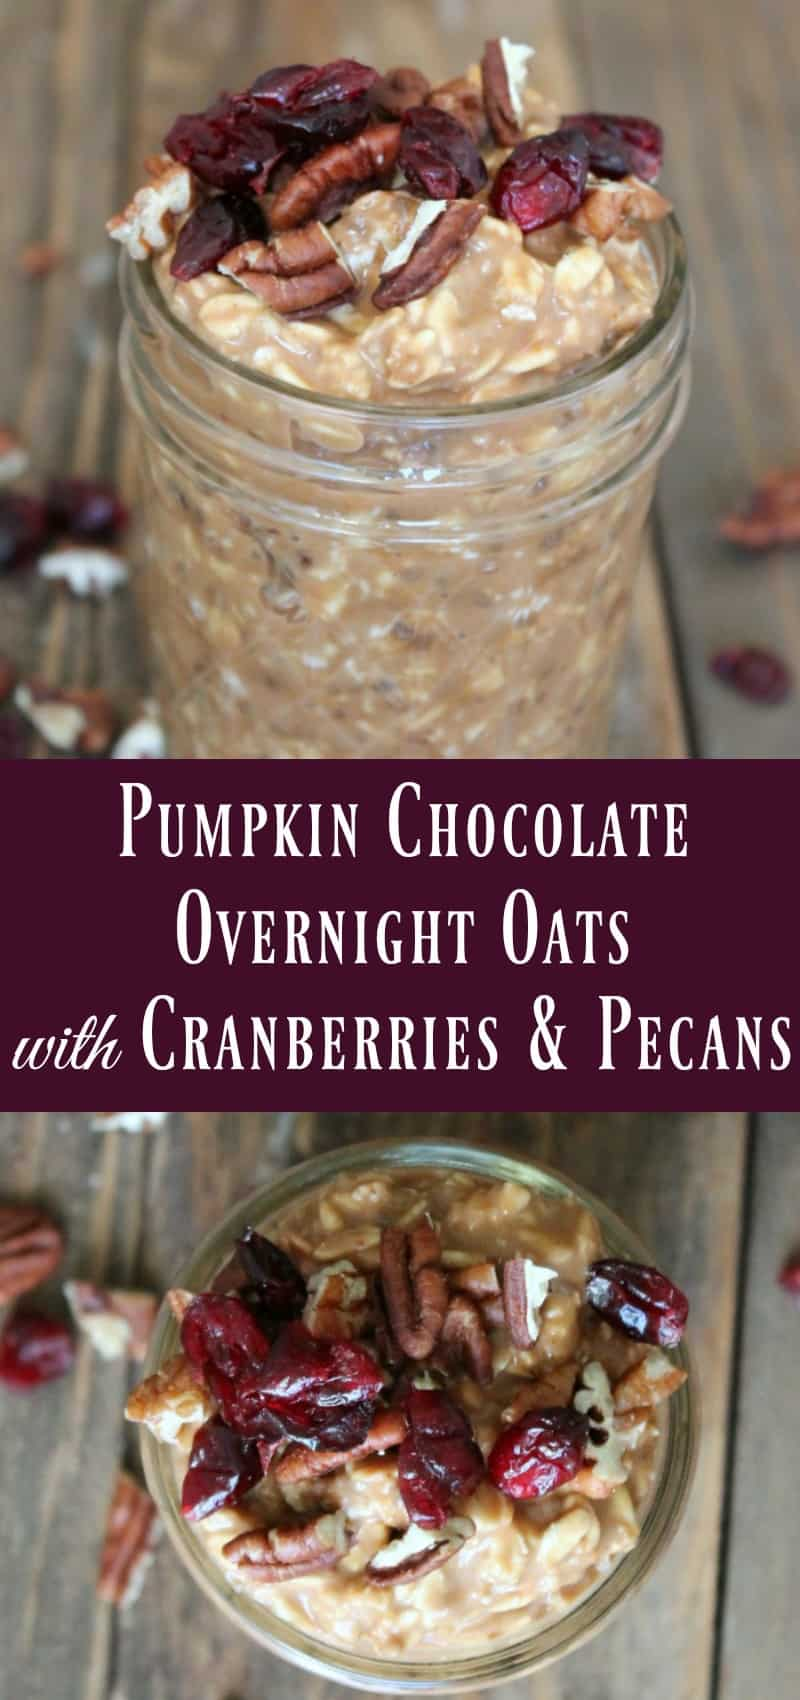 Pumpkin Chocolate Overnight Oats with Cranberries and Pecans